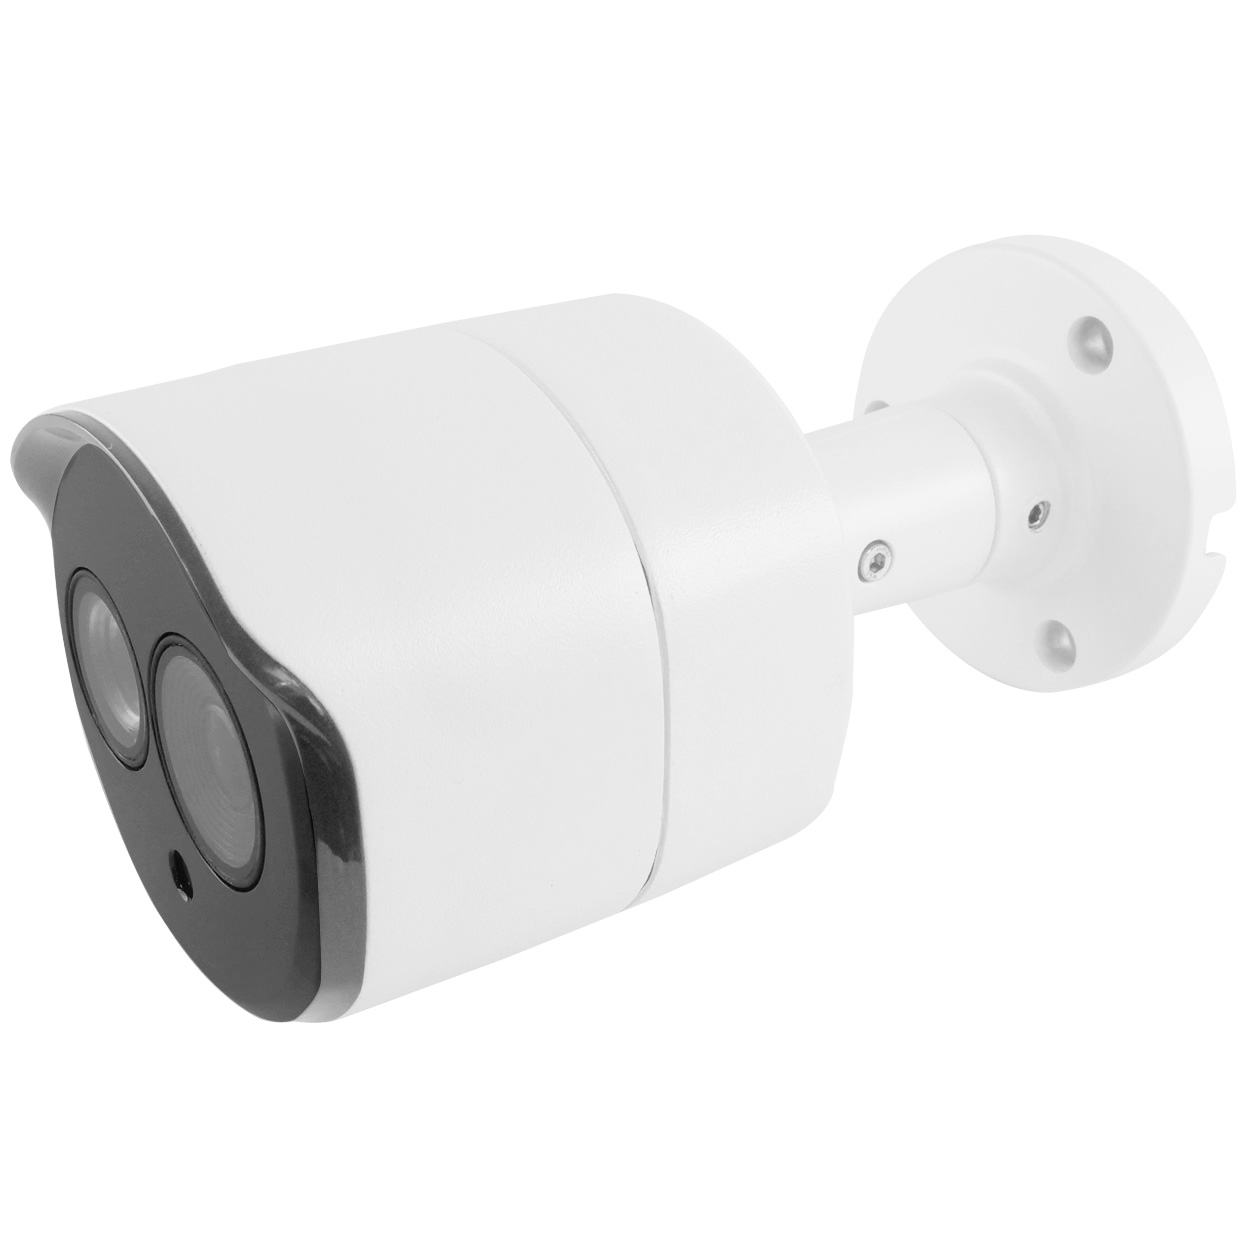 2.1MP Outdoor IP Bullet Camera, 2.8mm Lens, H.265, 98ft IR (with PoE)